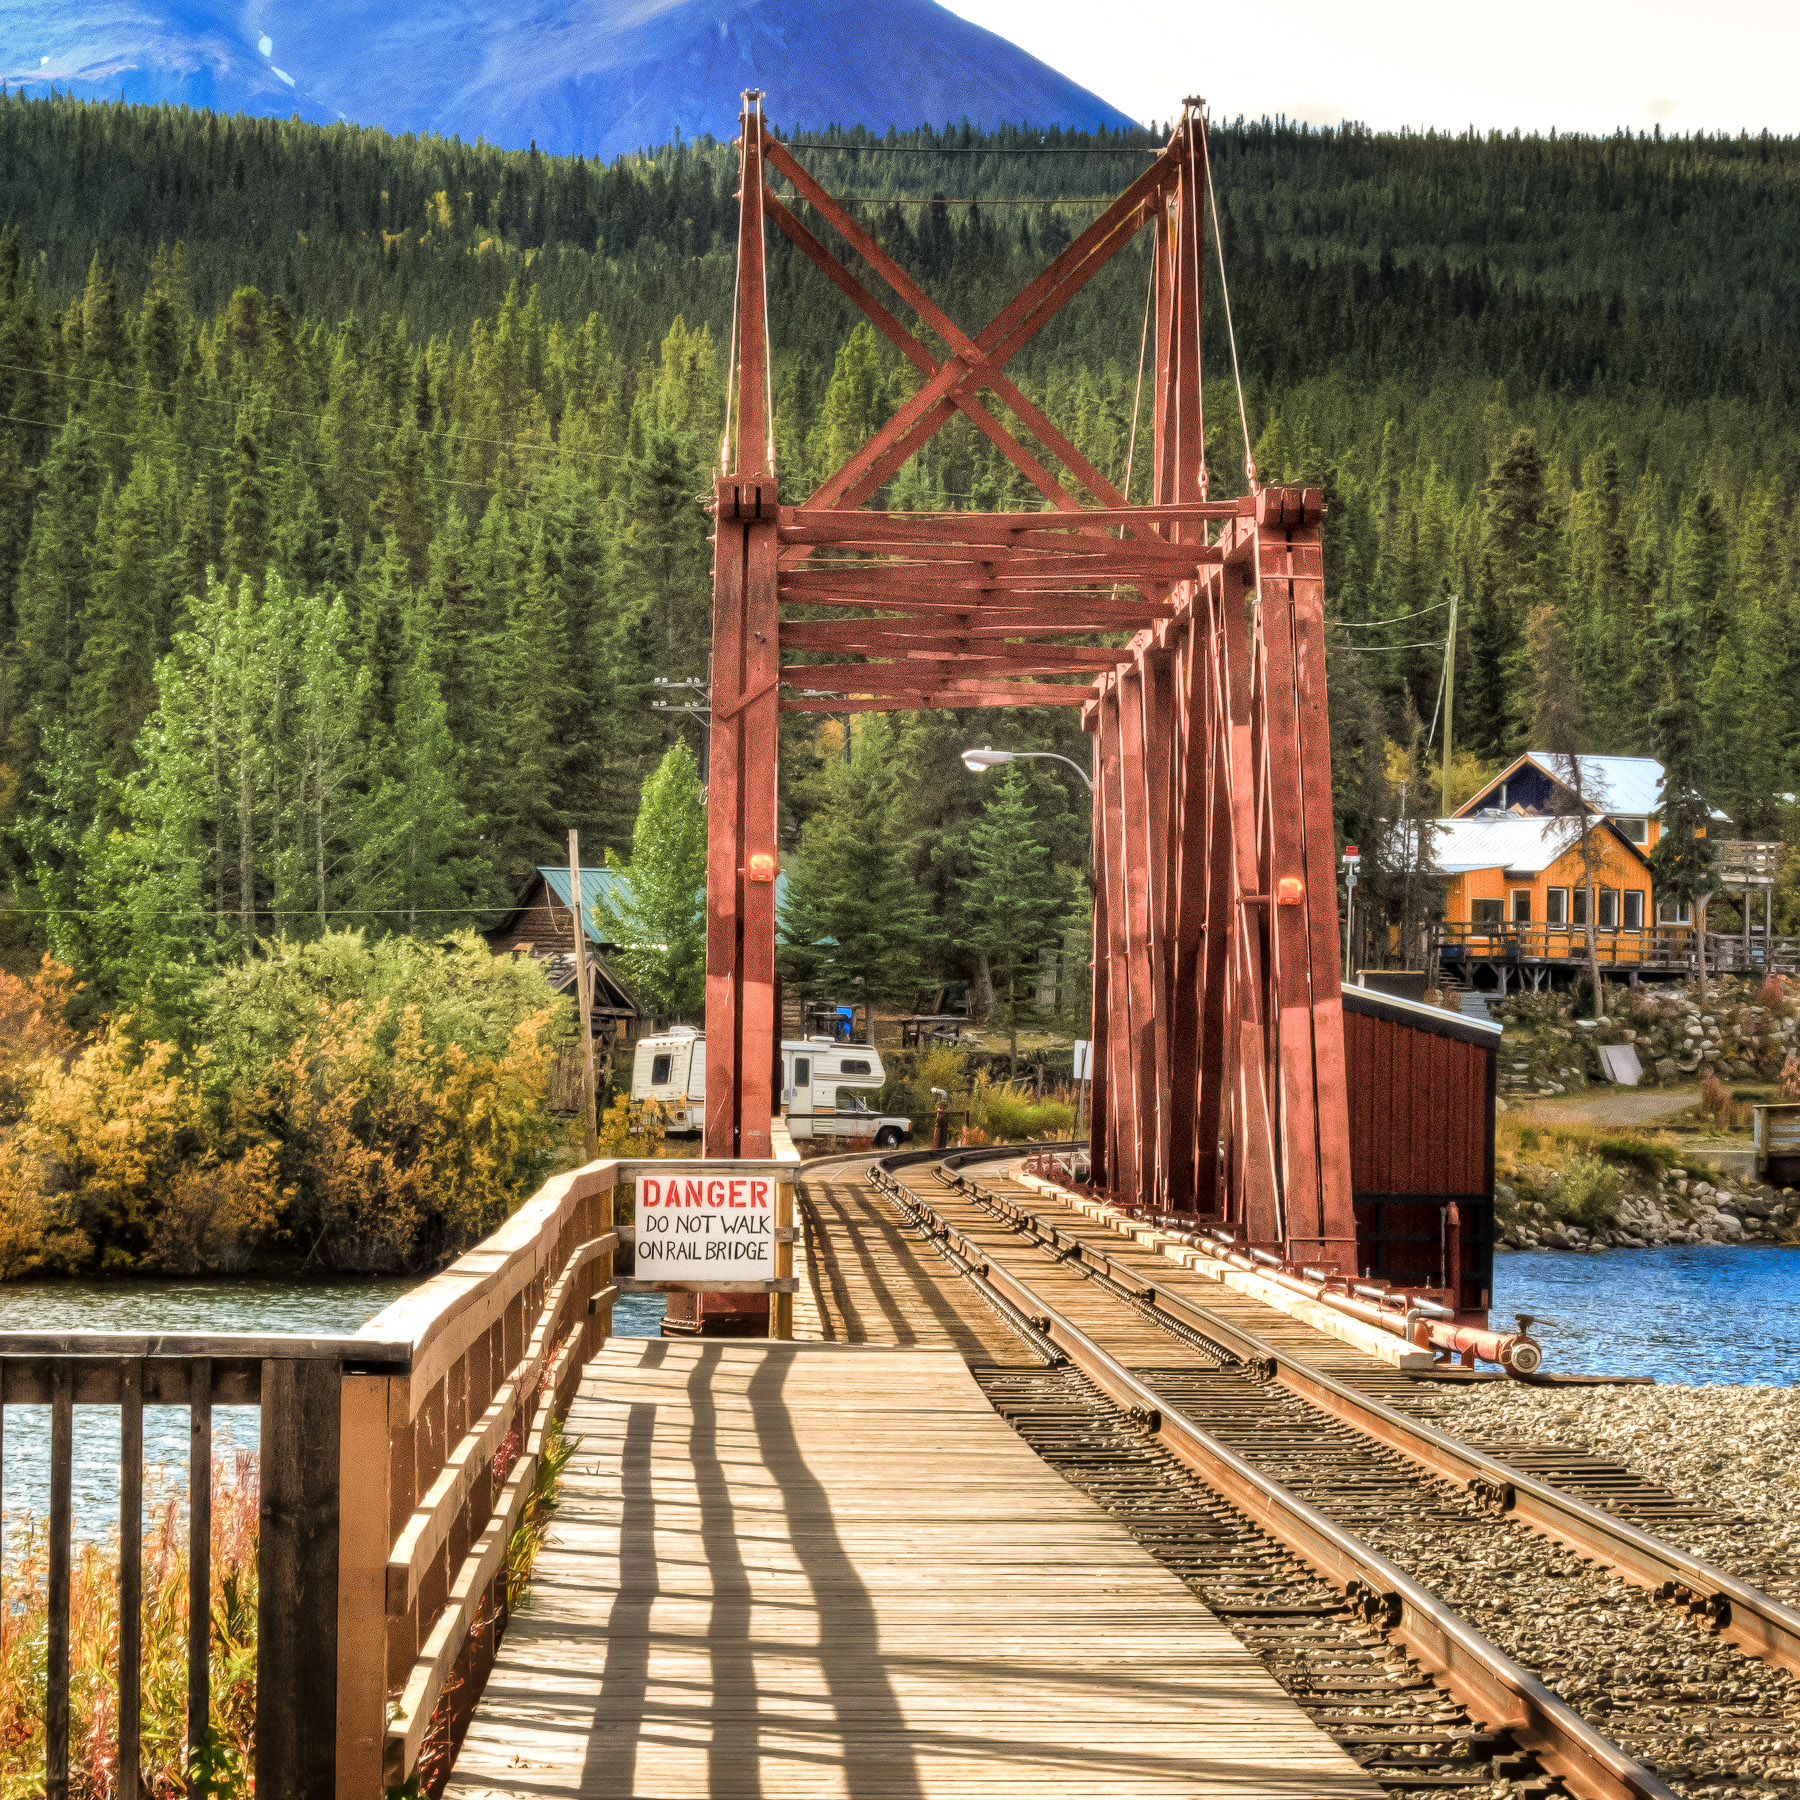 A railroad bridge in the tiny village of Carcross, Yukon Territory, Canada.